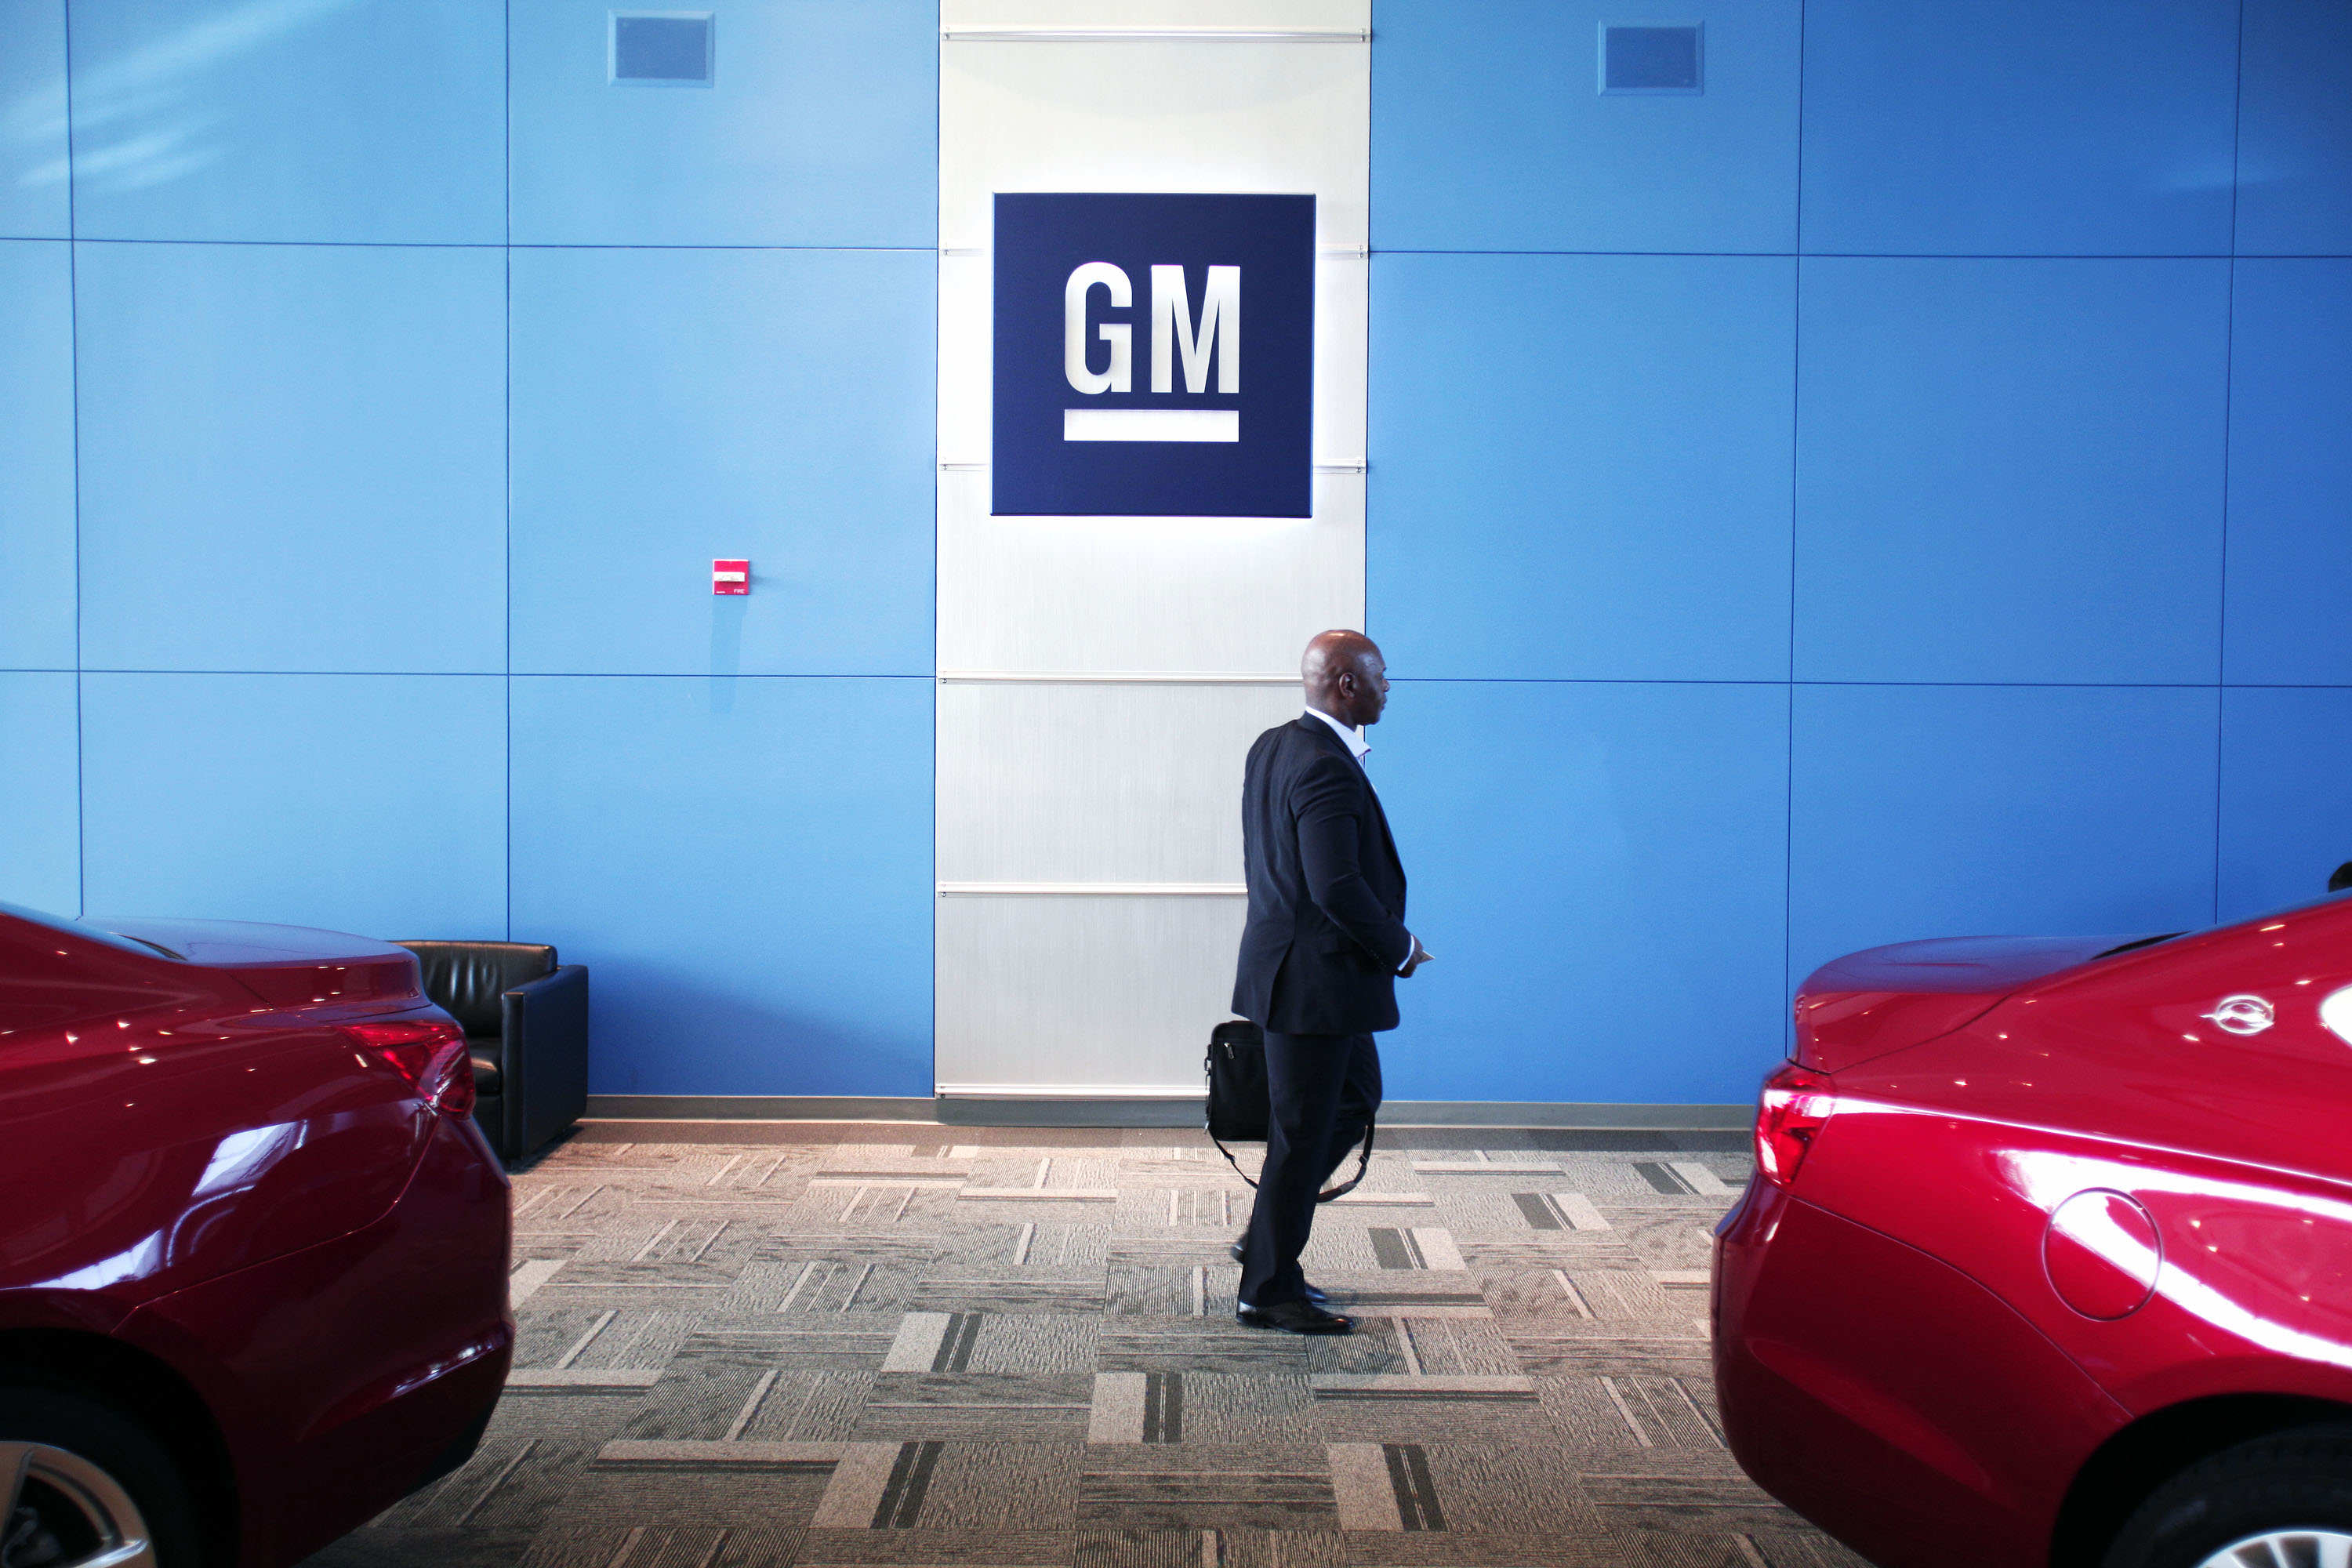 A person walks past the GM logo at the General Motors Technical Center as General Motors Chief Executive Officer Mary Barra holds a press conference on June 5, 2014 in Warren, Michigan.